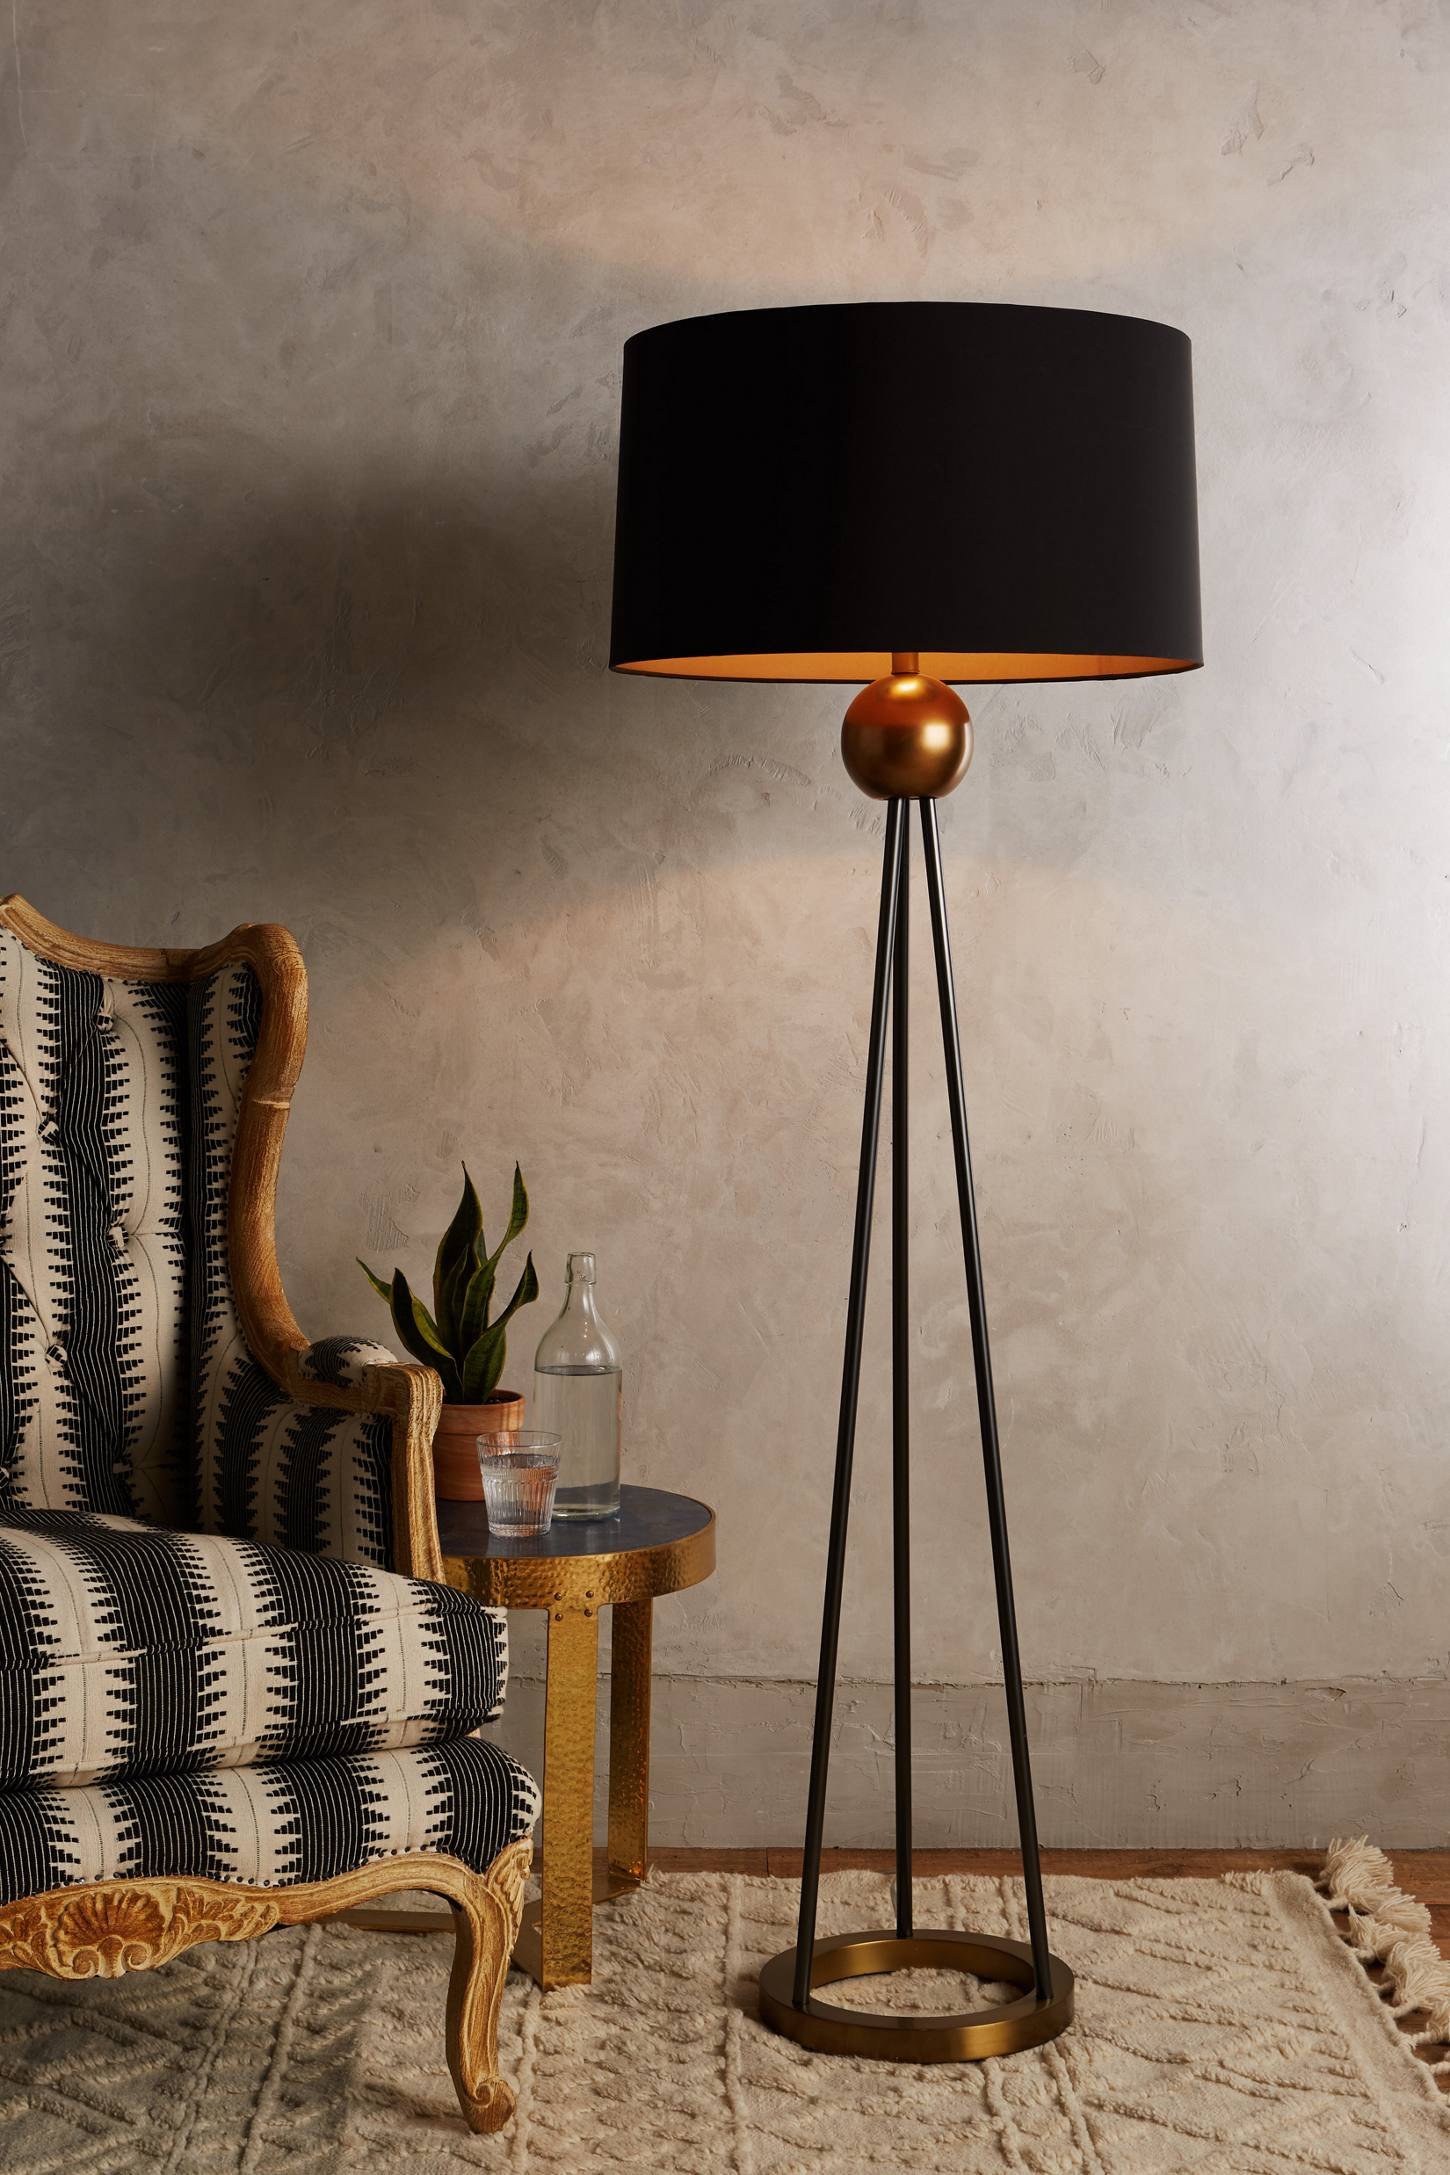 Slide View: 2: Triangulate Floor Lamp Ensemble